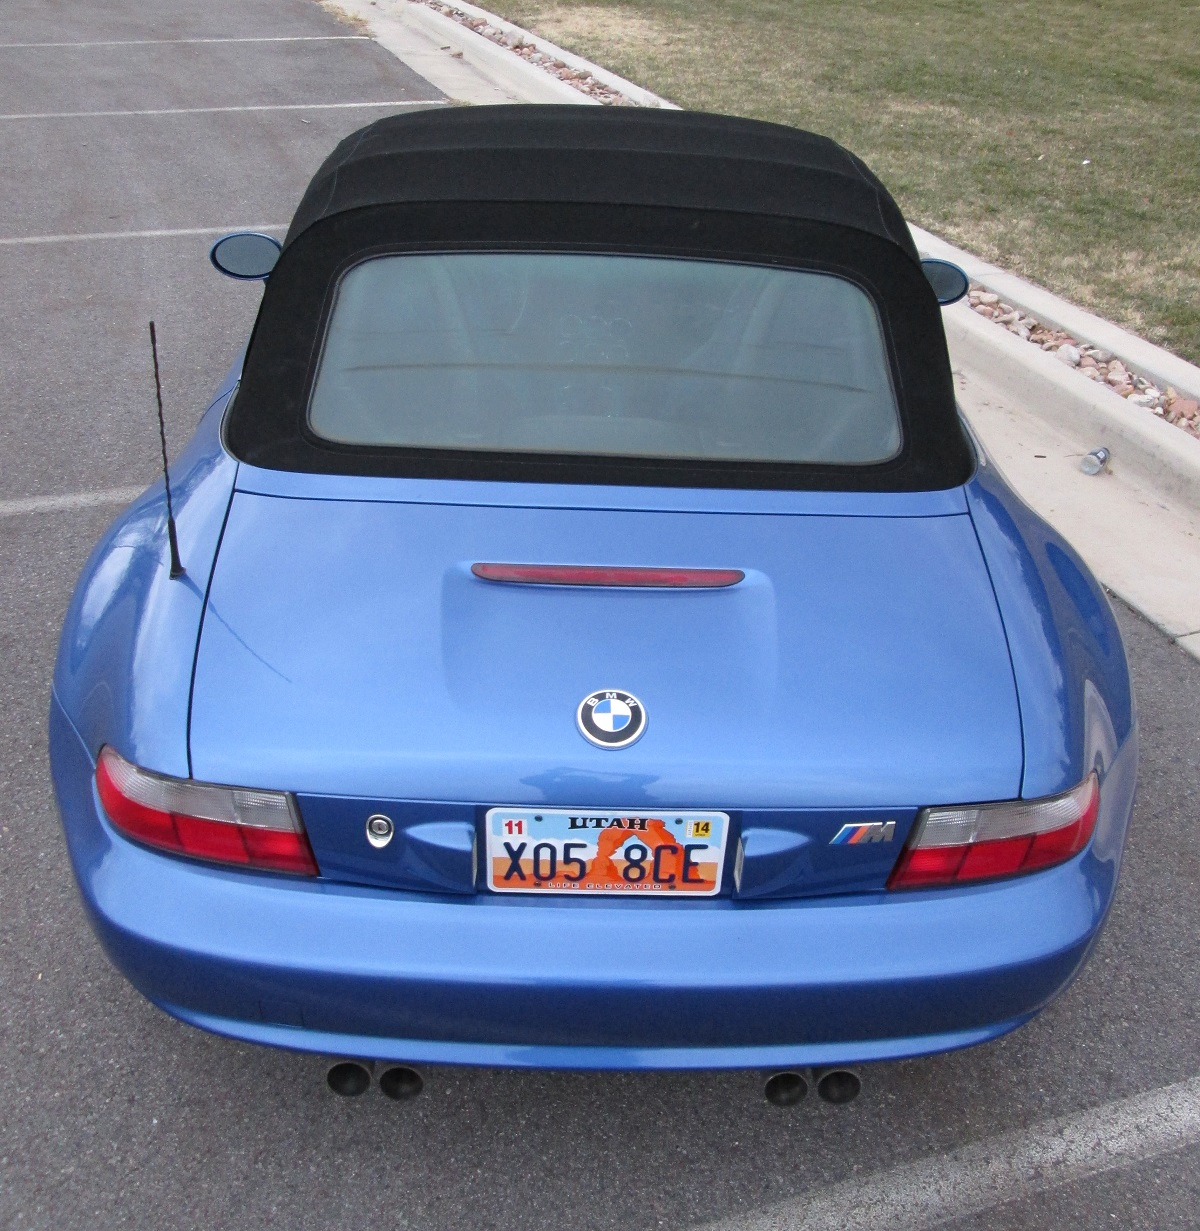 Bmw Z3 For Sale: Buy Used 2000 BMW Z3 M ROADSTER CONVERTIBLE WITH FACTORY